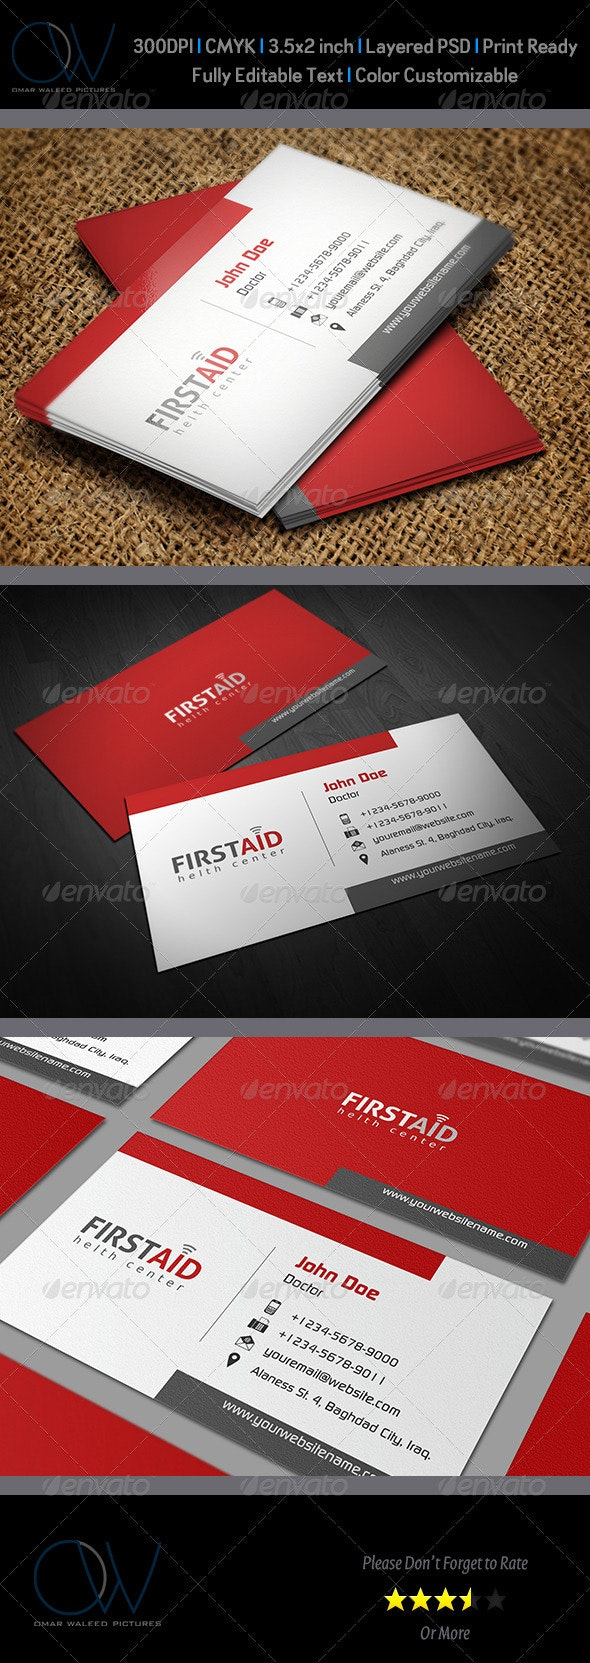 First Aid Business Card - Industry Specific Business Cards